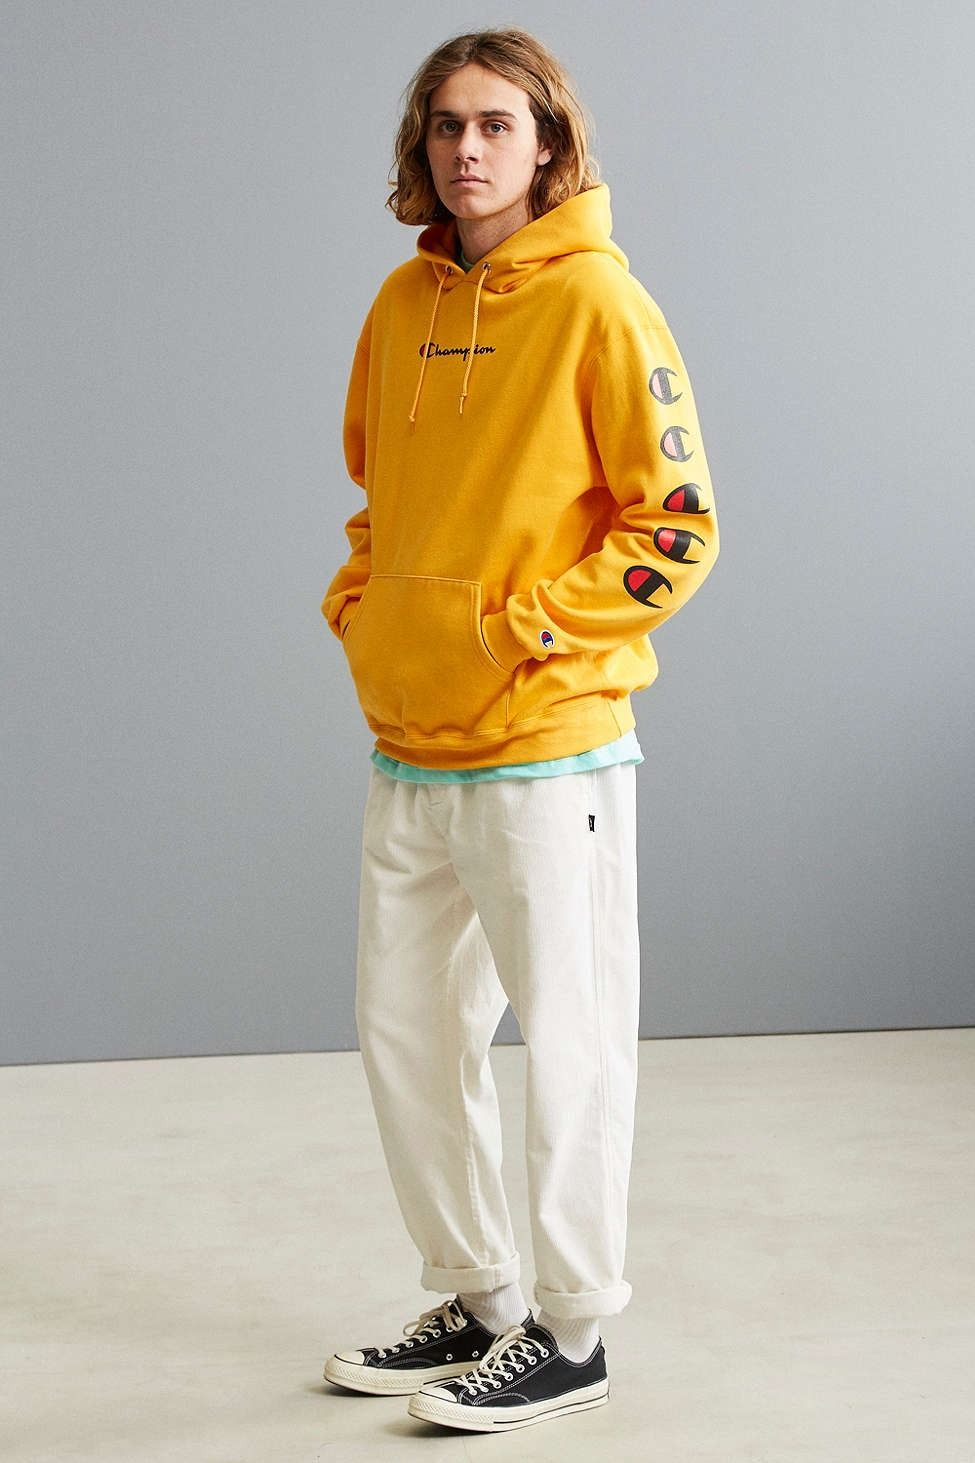 a4a89882bfd4 Champion Repeat Eco Hoodie Sweatshirt - Urban Outfitters